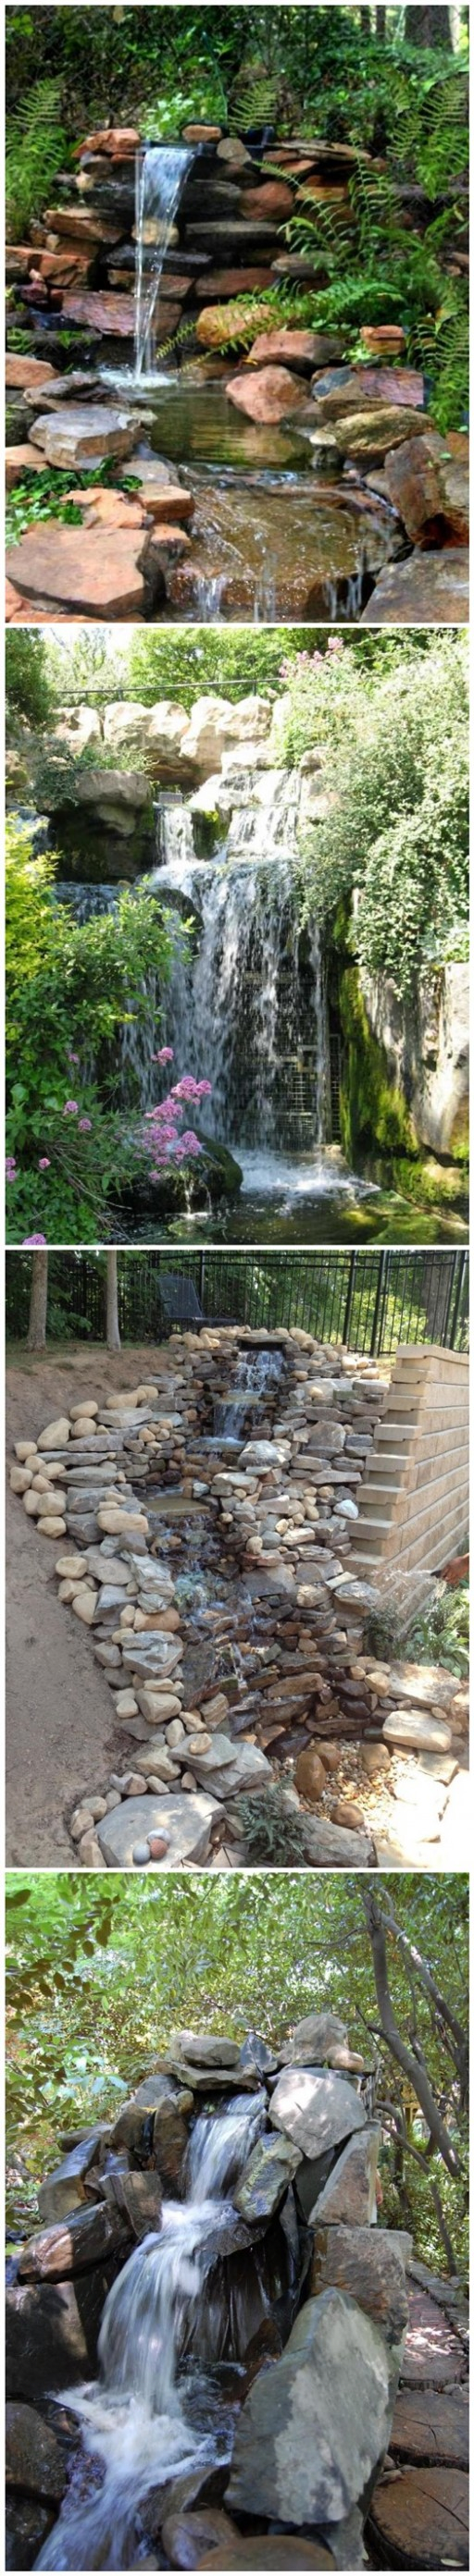 How to build a garden waterfall pond diy tag for How to make a fish pond